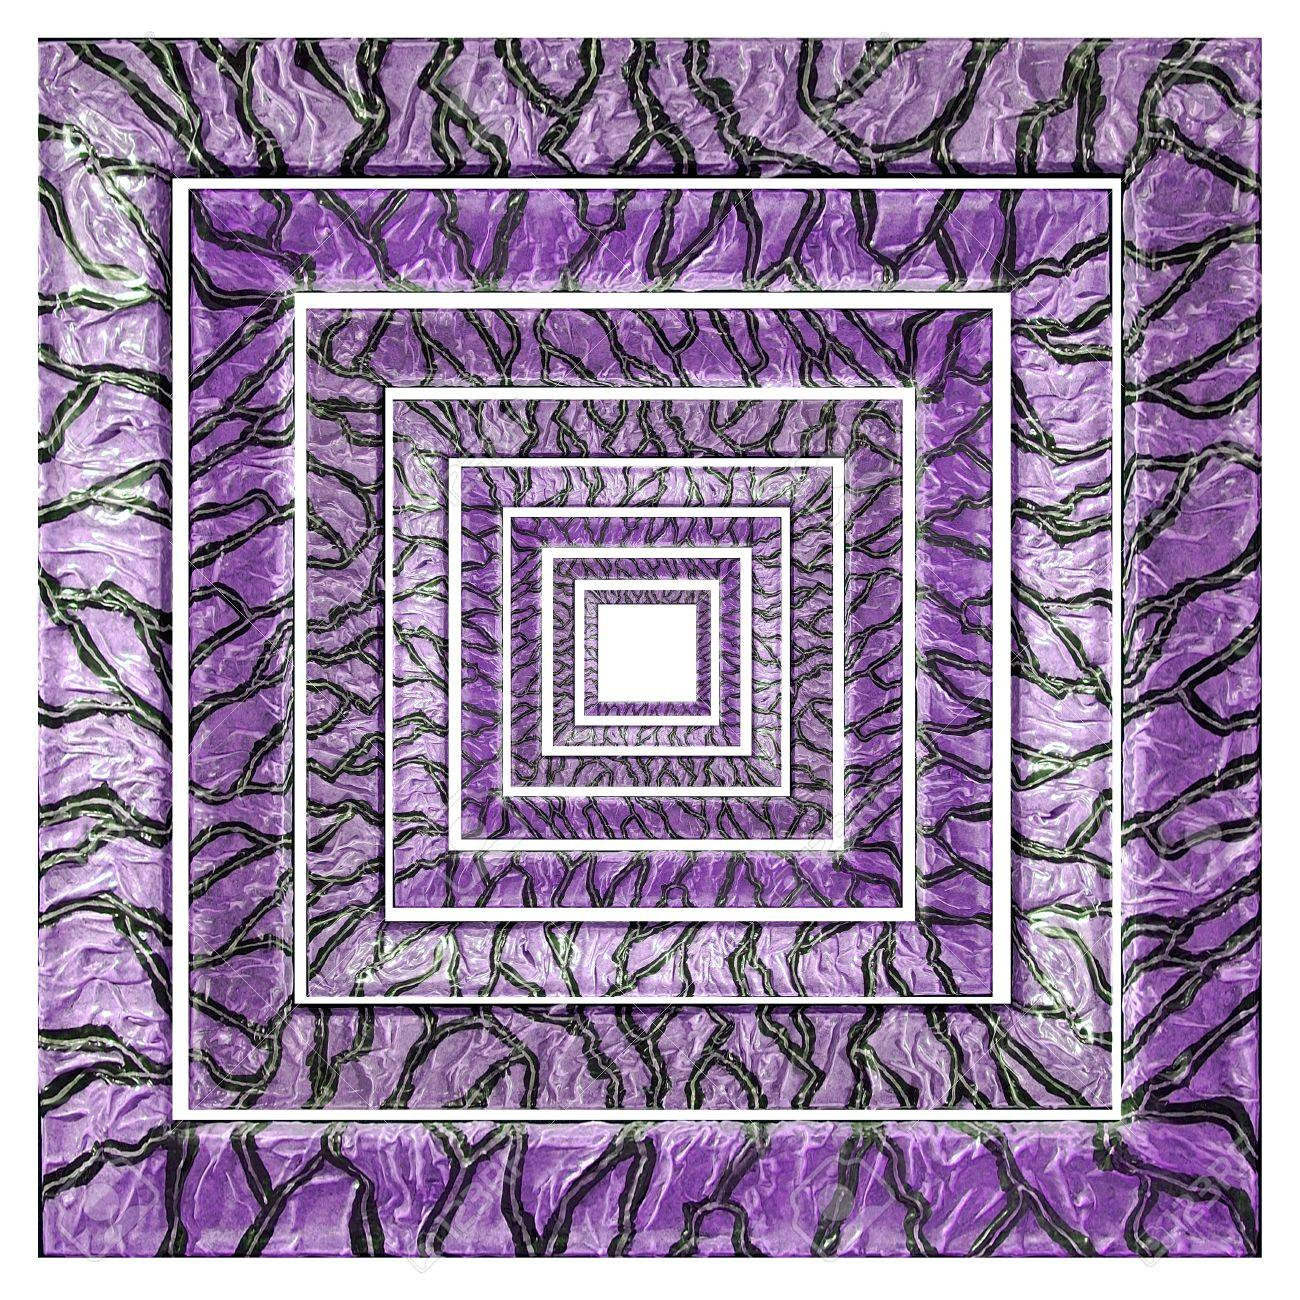 Cornici Concentriche Square Purple Variegated Concentric Frames With Grey Veins